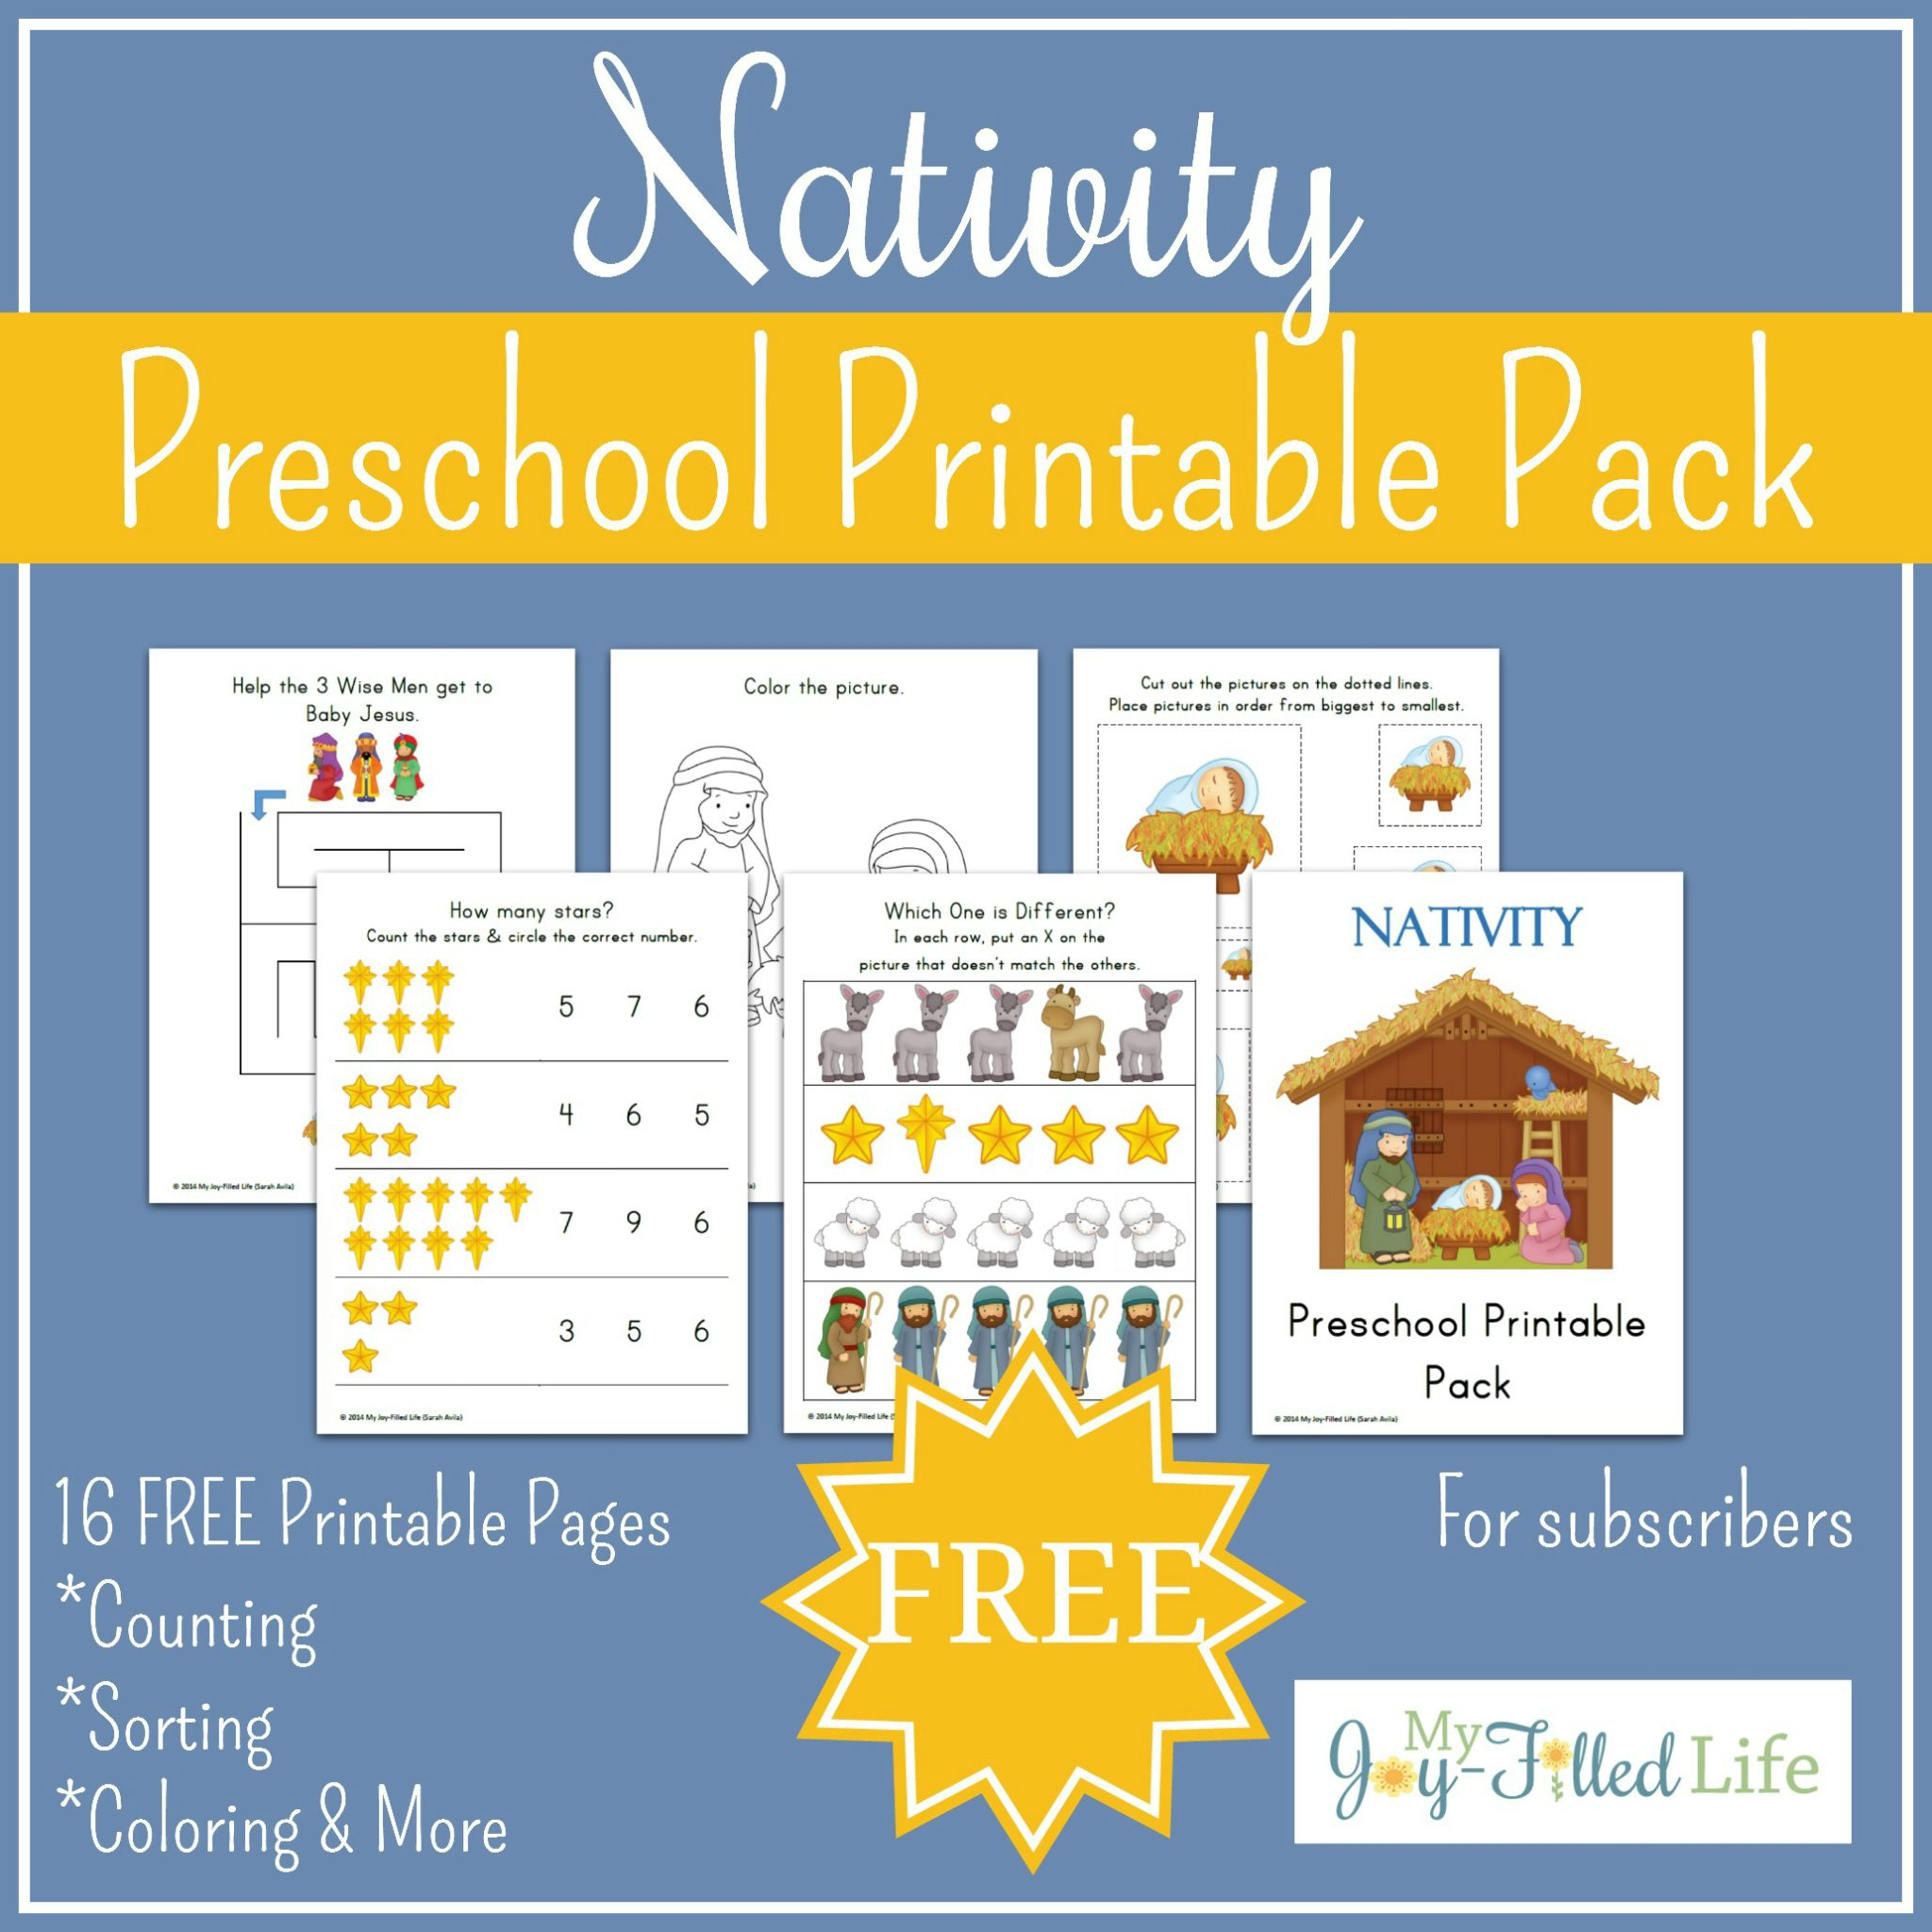 Free Printable Nativity Preschool Pack - My Joy-Filled Life - Printable Nativity Puzzle